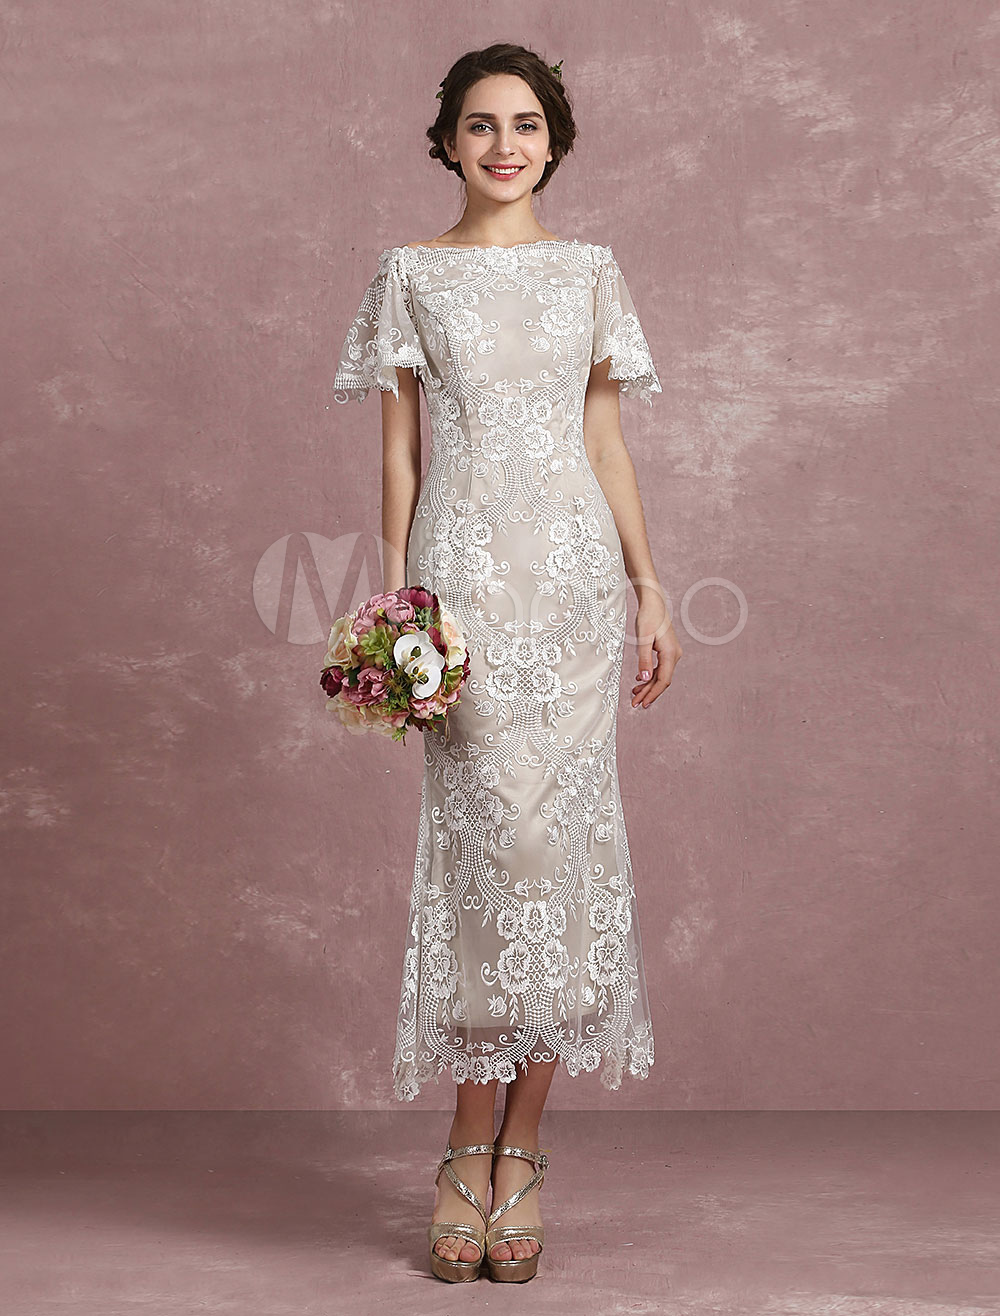 Buy Summer Wedding Dresses 2018 Champagne Lace Mermaid Bridal Gown Off The Shoulder Short Sleeve Illusion Back Beach Bridal Dress Milanoo for $127.49 in Milanoo store